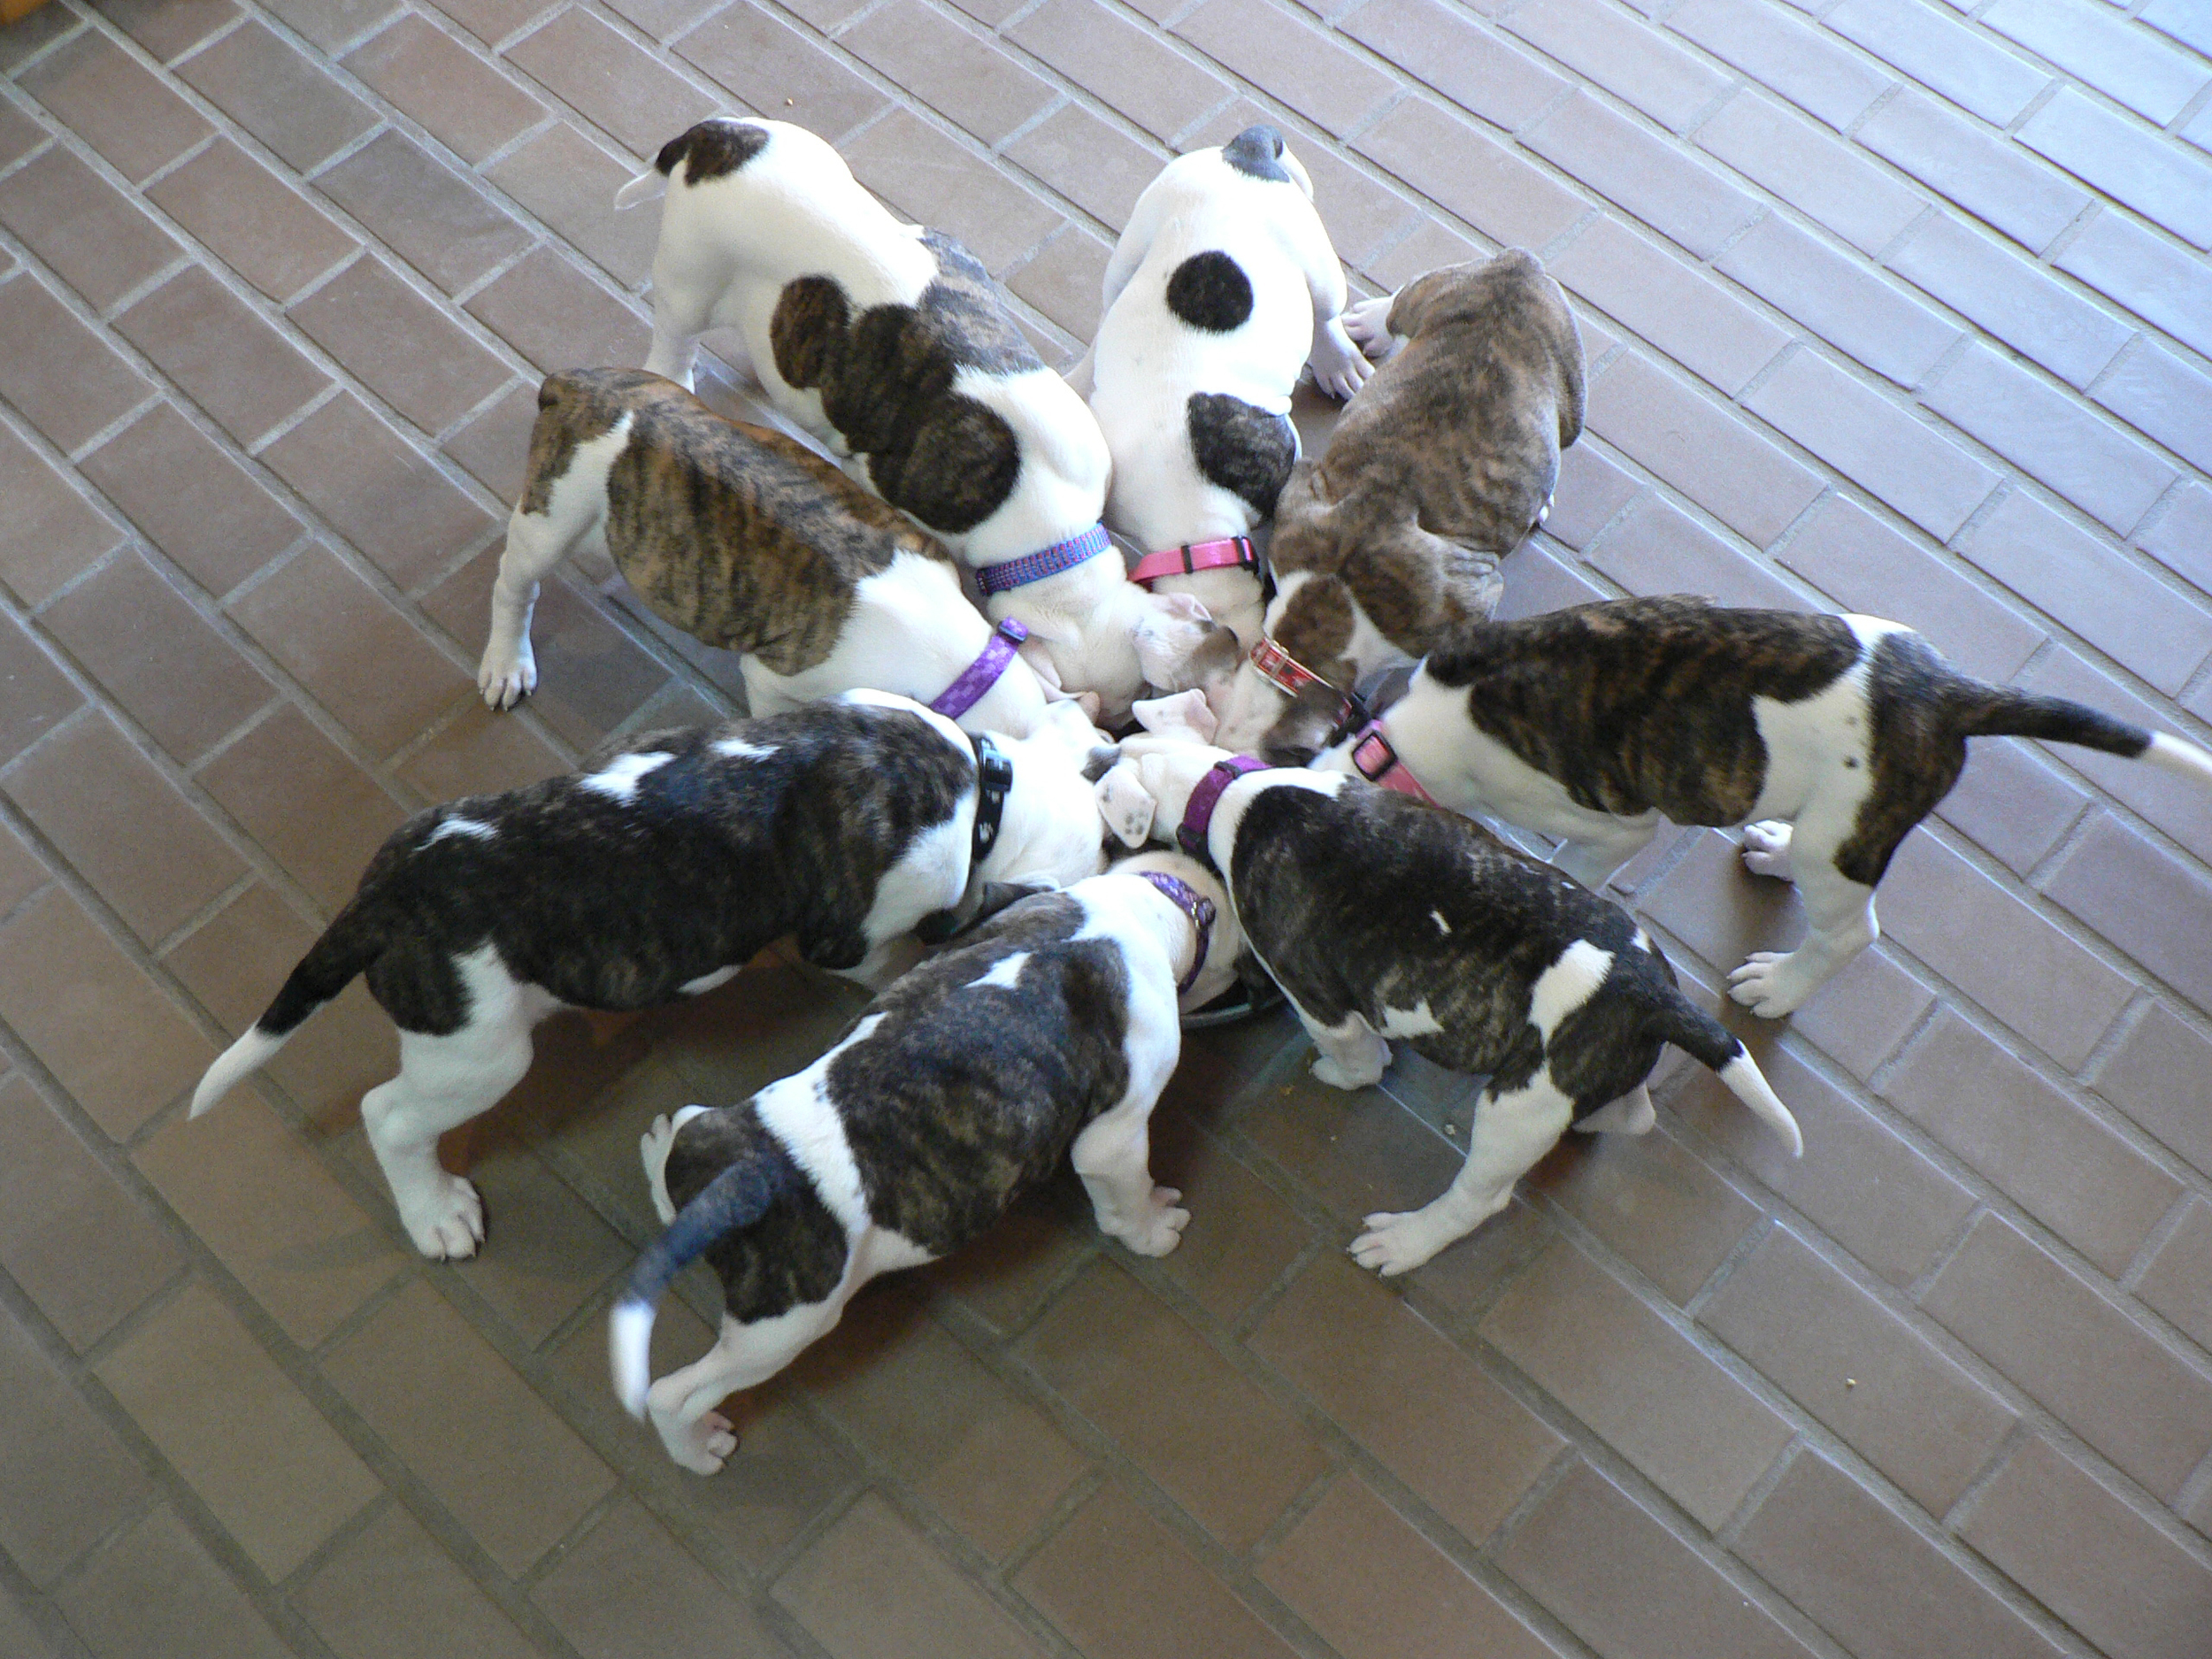 Best-Huddle-HWAC-dogs-eating.jpg